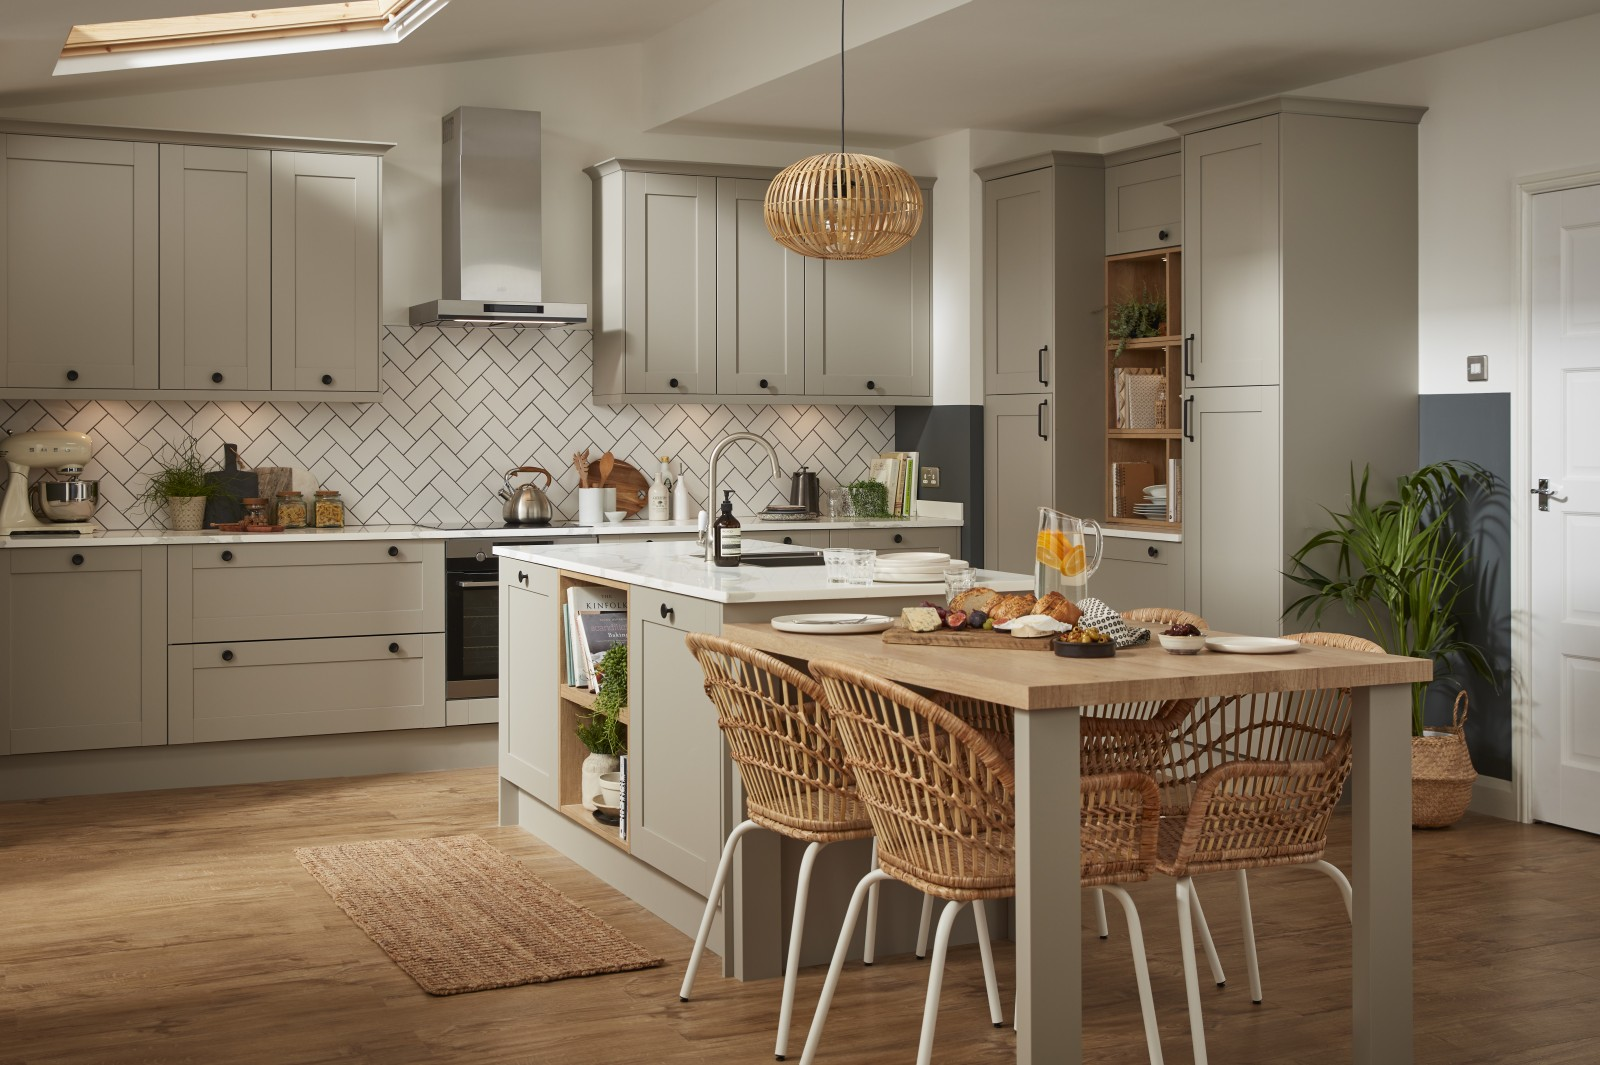 Tatton Kitchen by Magnet. A beautiful easy to use kitchen with traditional features with stylish modern touches.